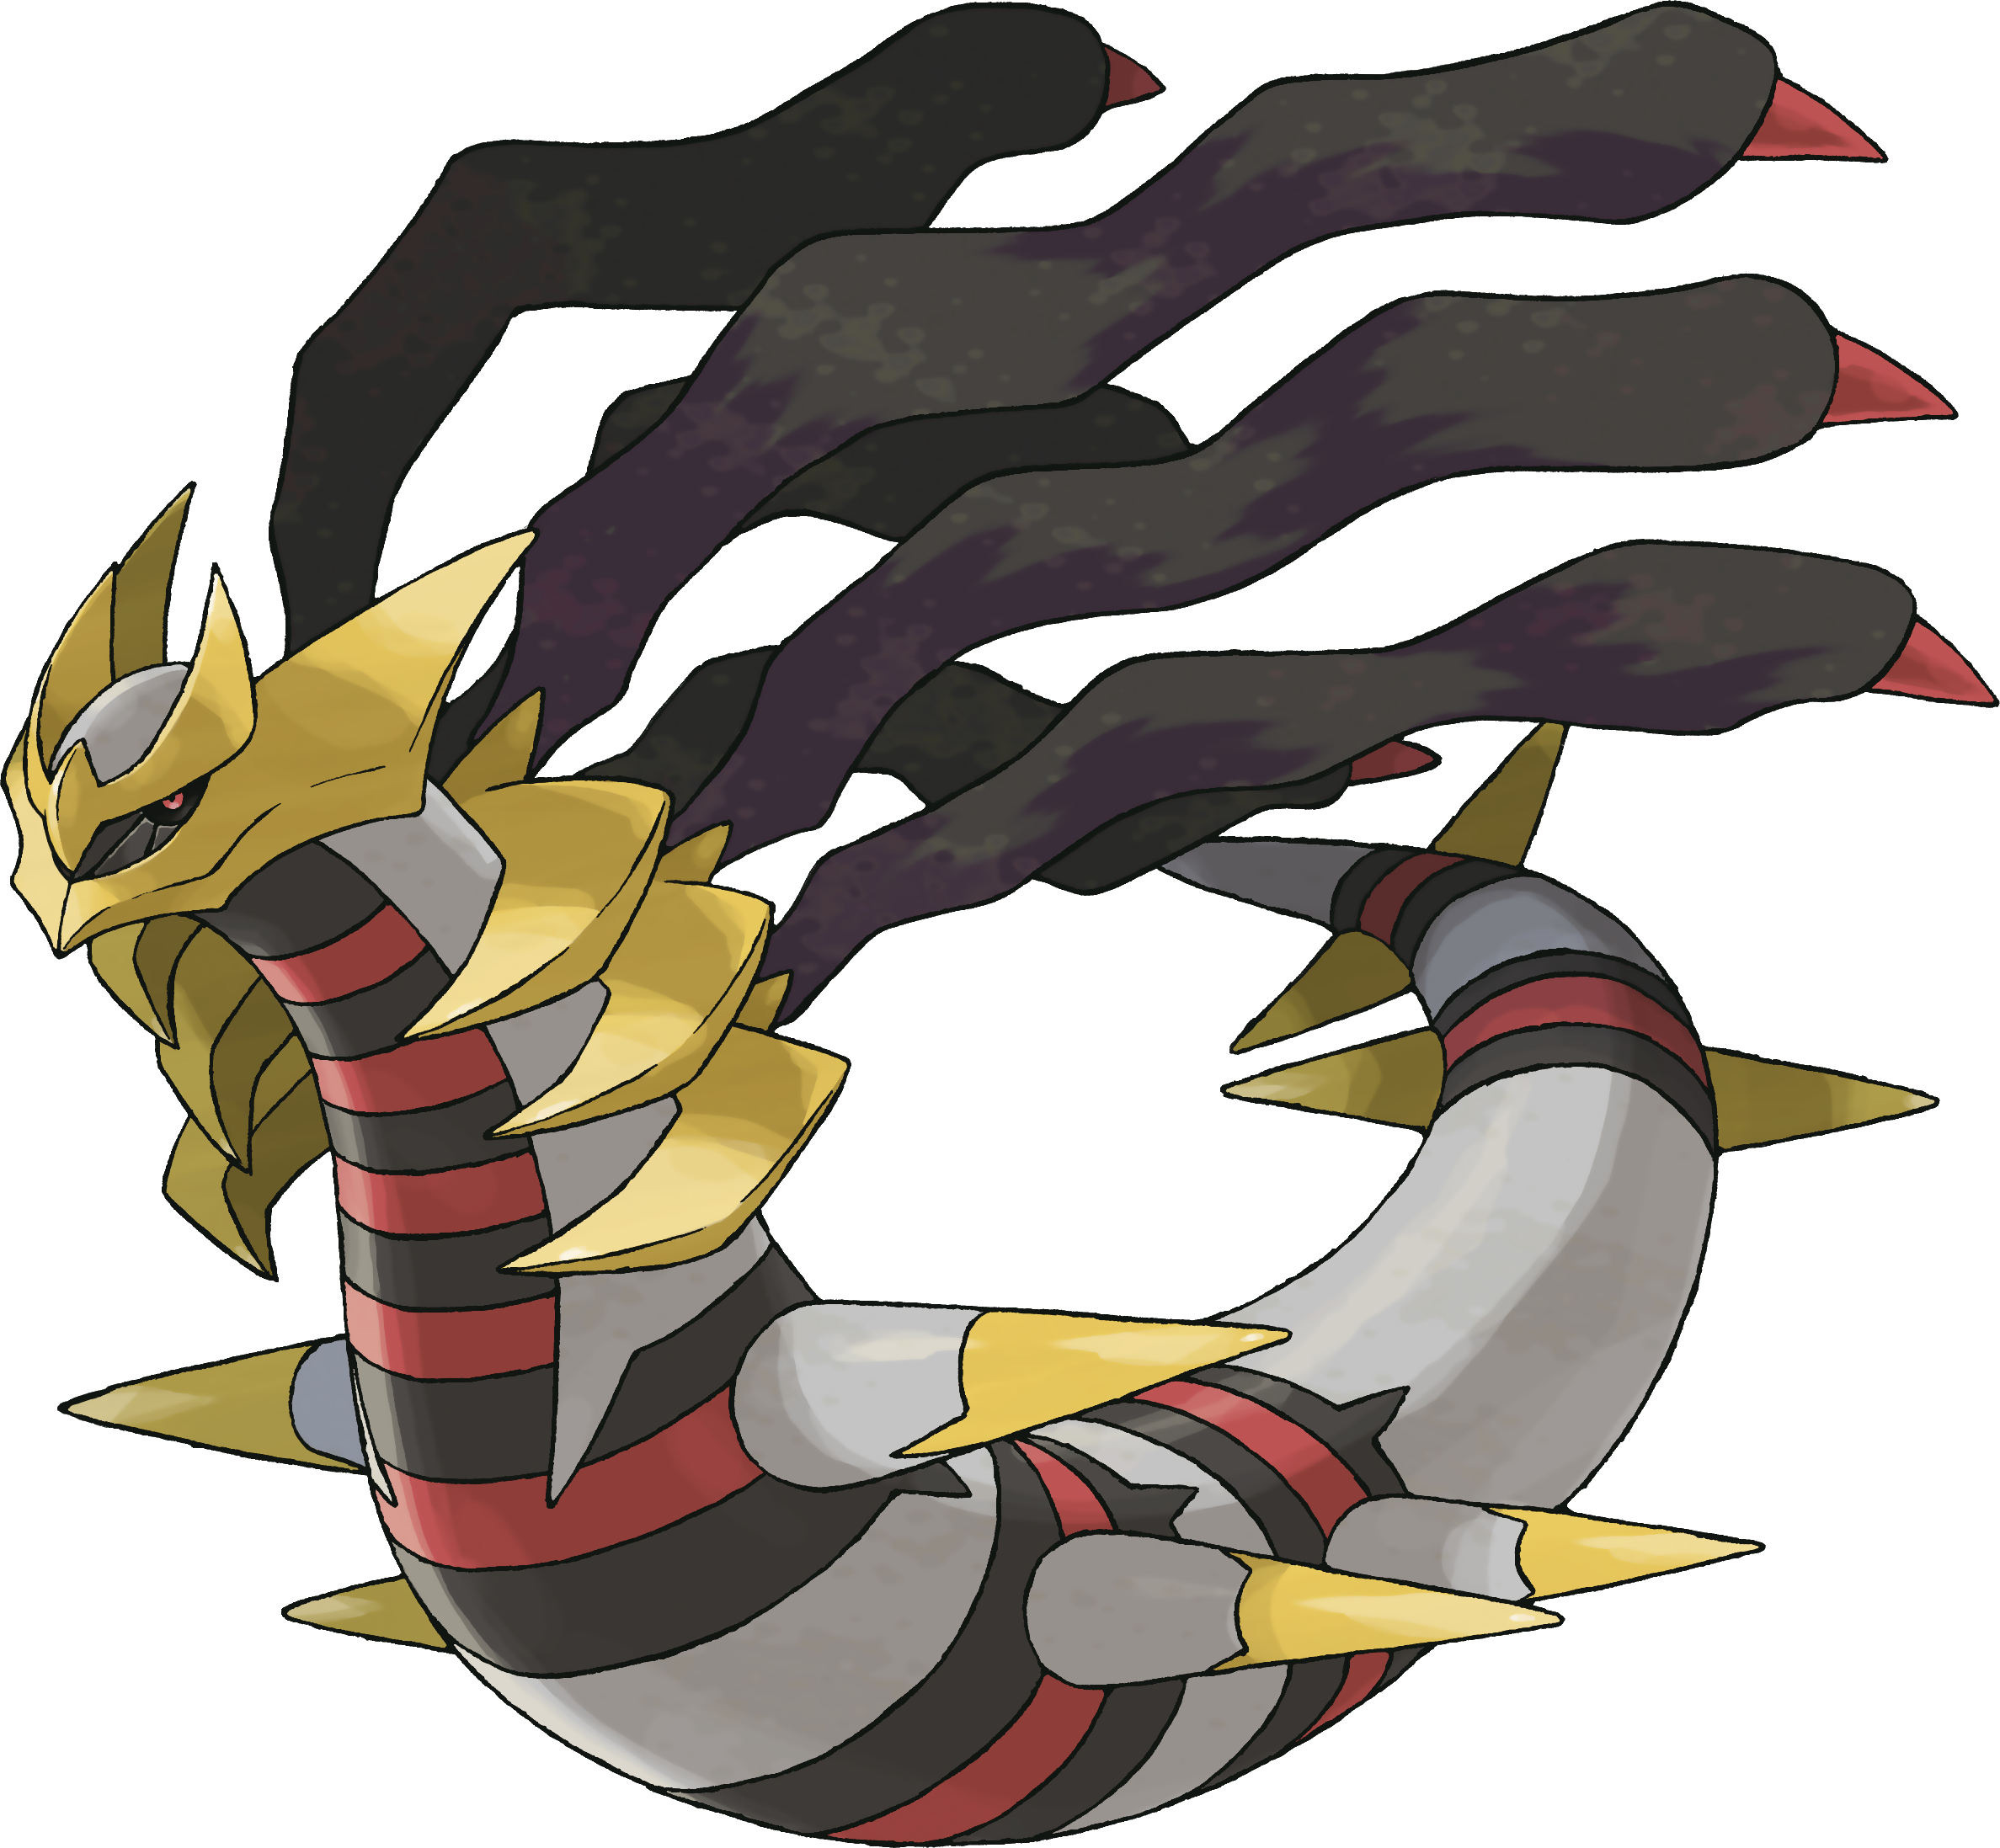 Giratina - Villains Wiki - villains, bad guys, comic books, anime